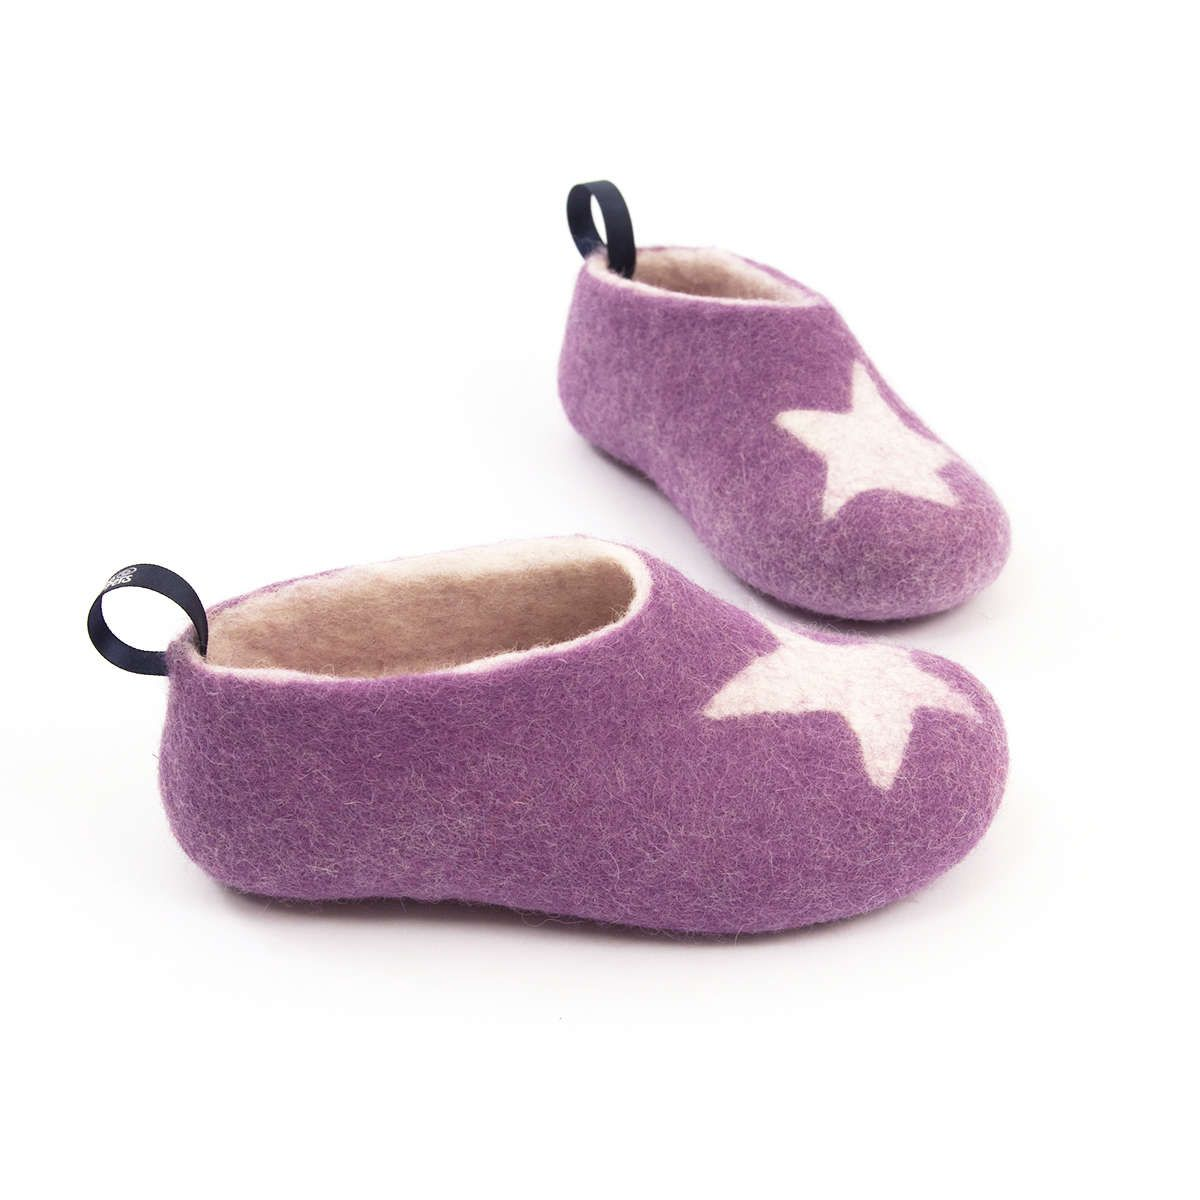 Wooppers felted woolen slippers for Kids STAR lilac by Wooppers